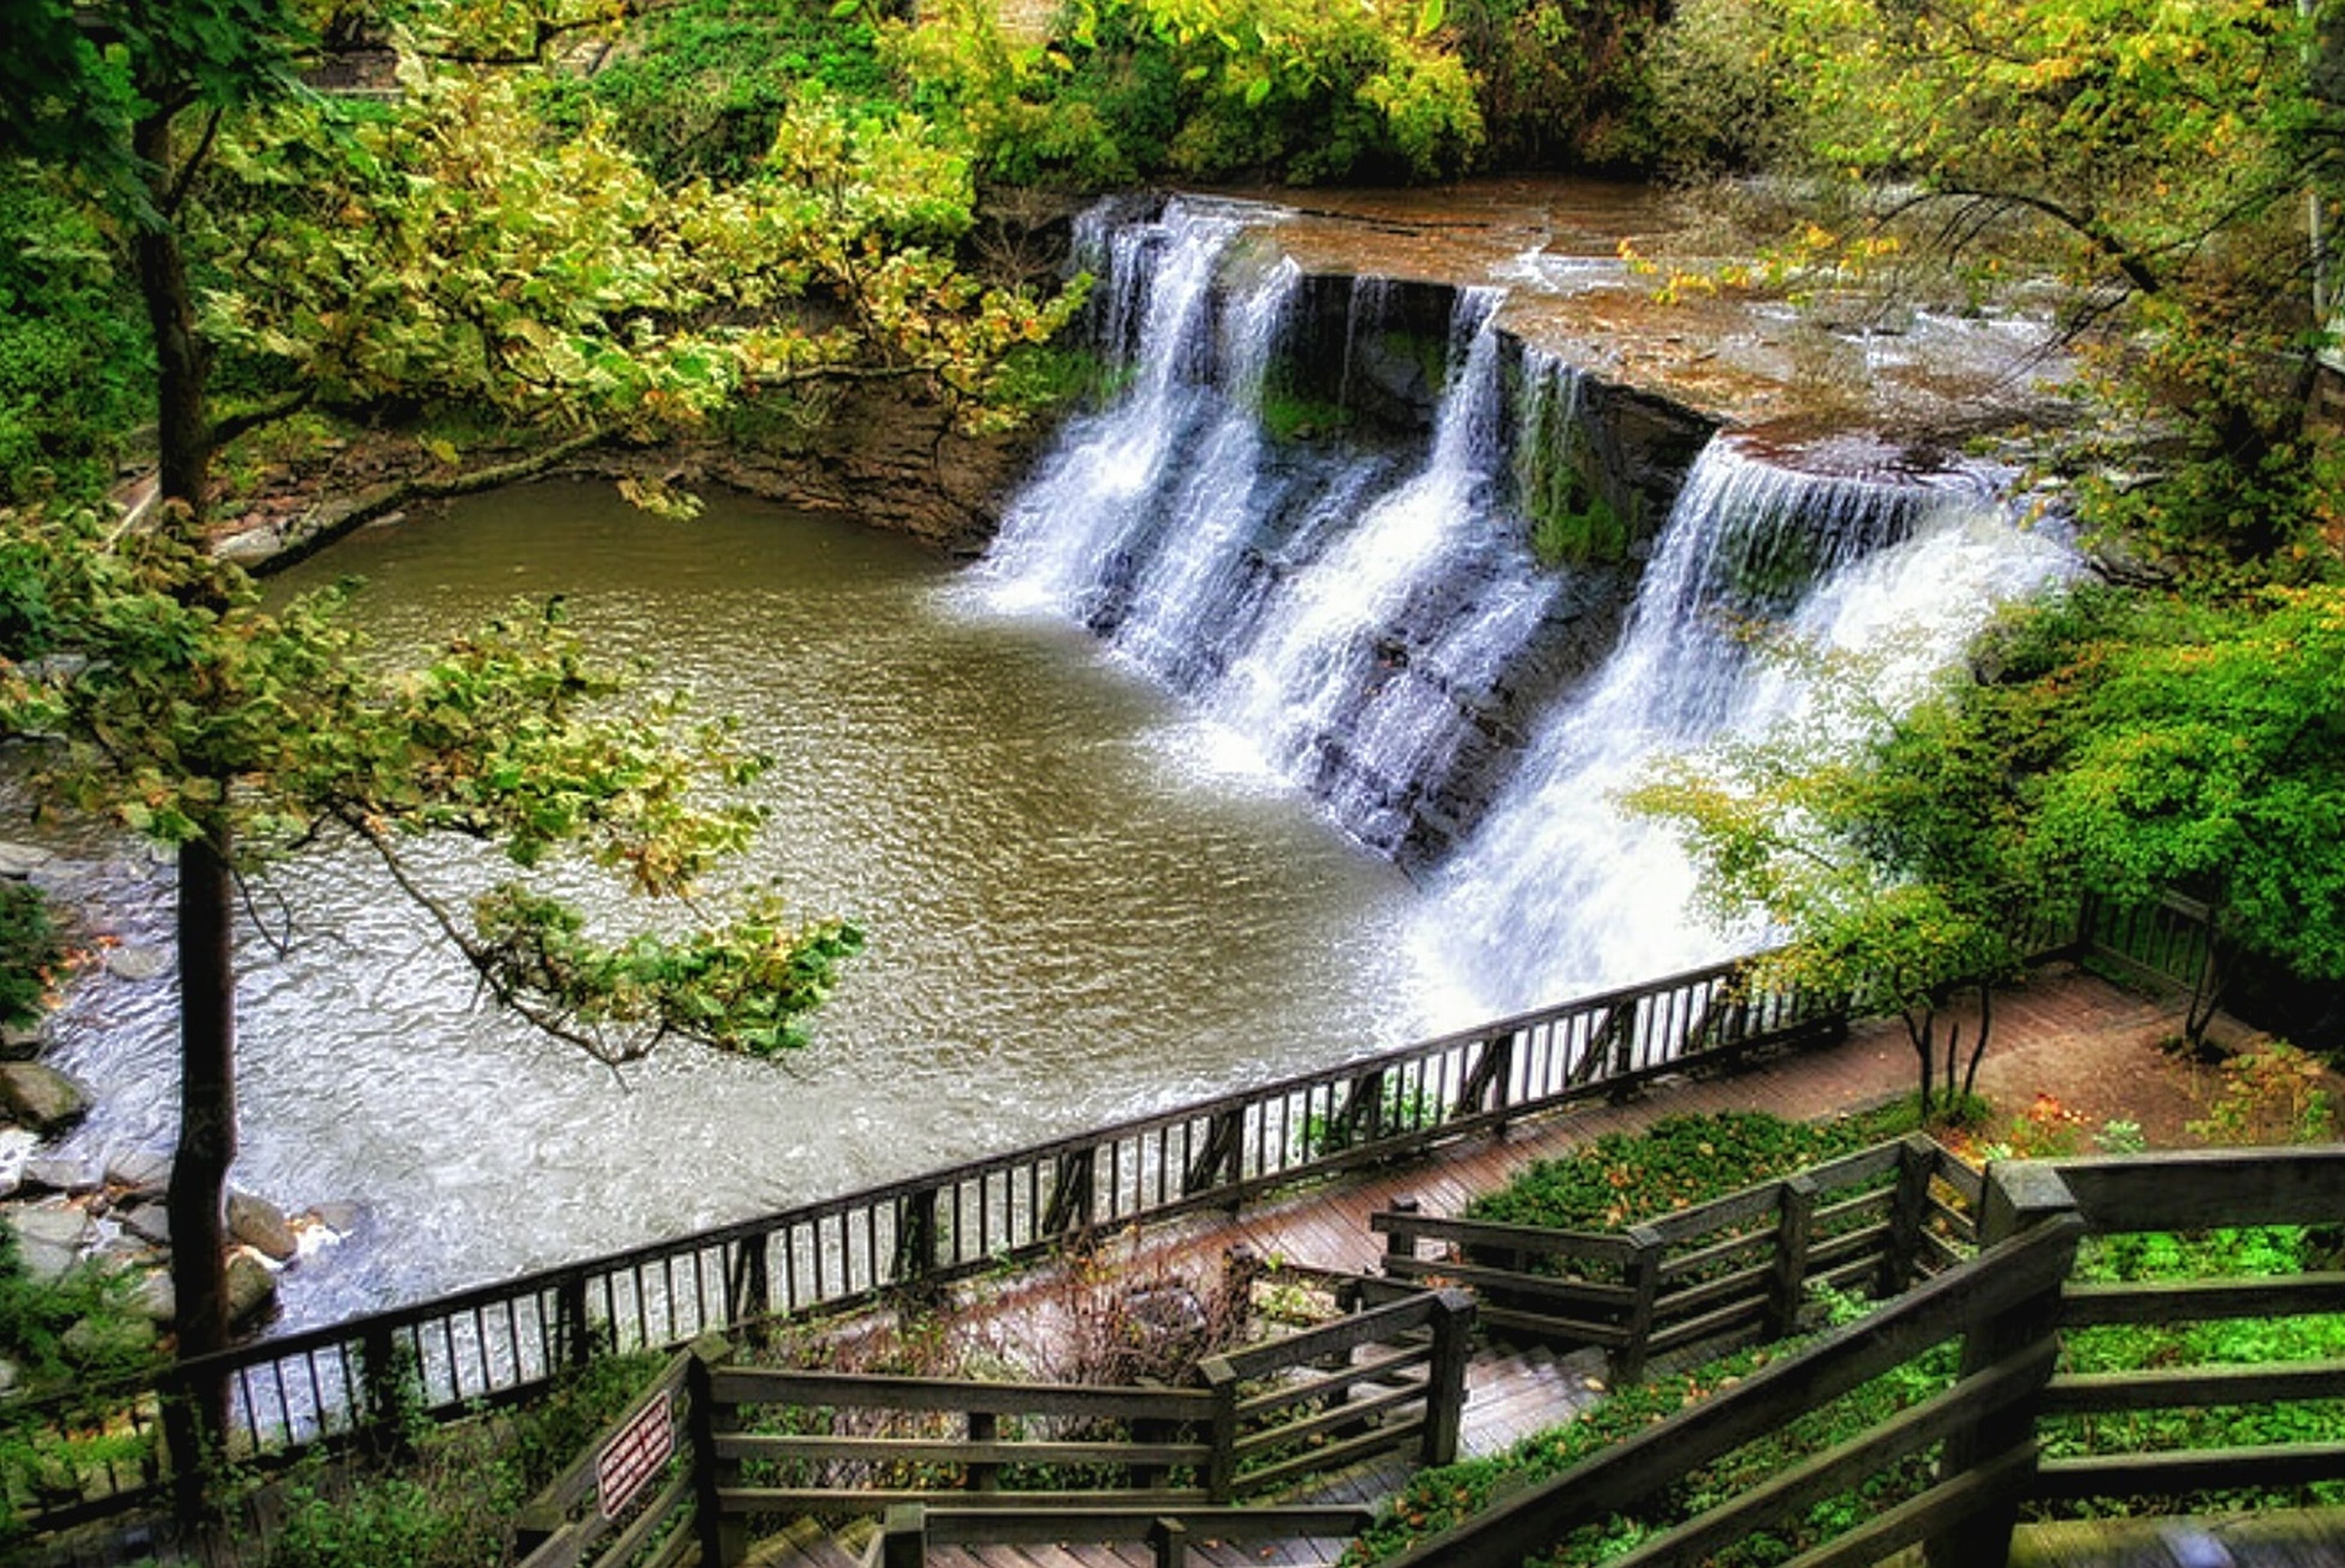 Waterfall Water Beauty In Nature Nature Tranquil Scene Flowing Water Long Exposure Tree Steps Green Color My Favorite Place Chagrin River In Chagrin Ohio❤